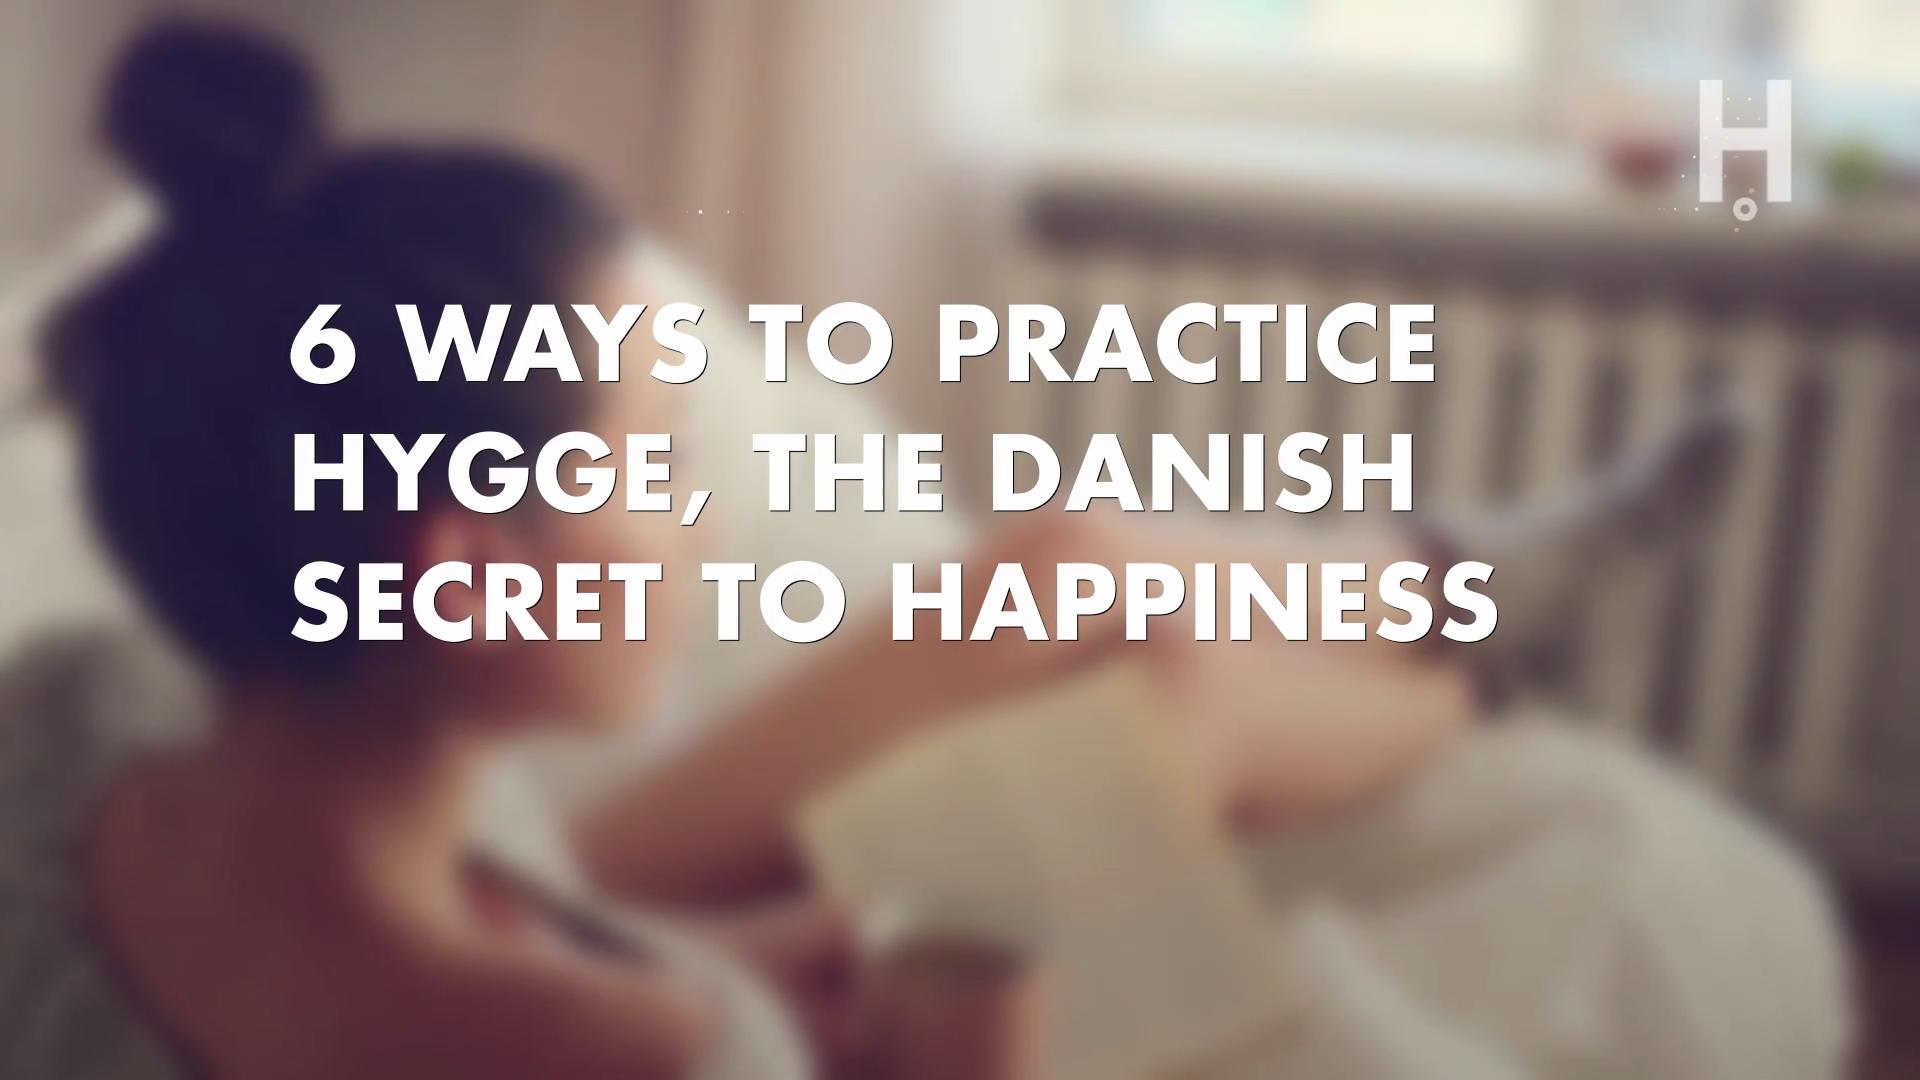 6 Ways To Practice Hygge The Danish Secret To Happiness